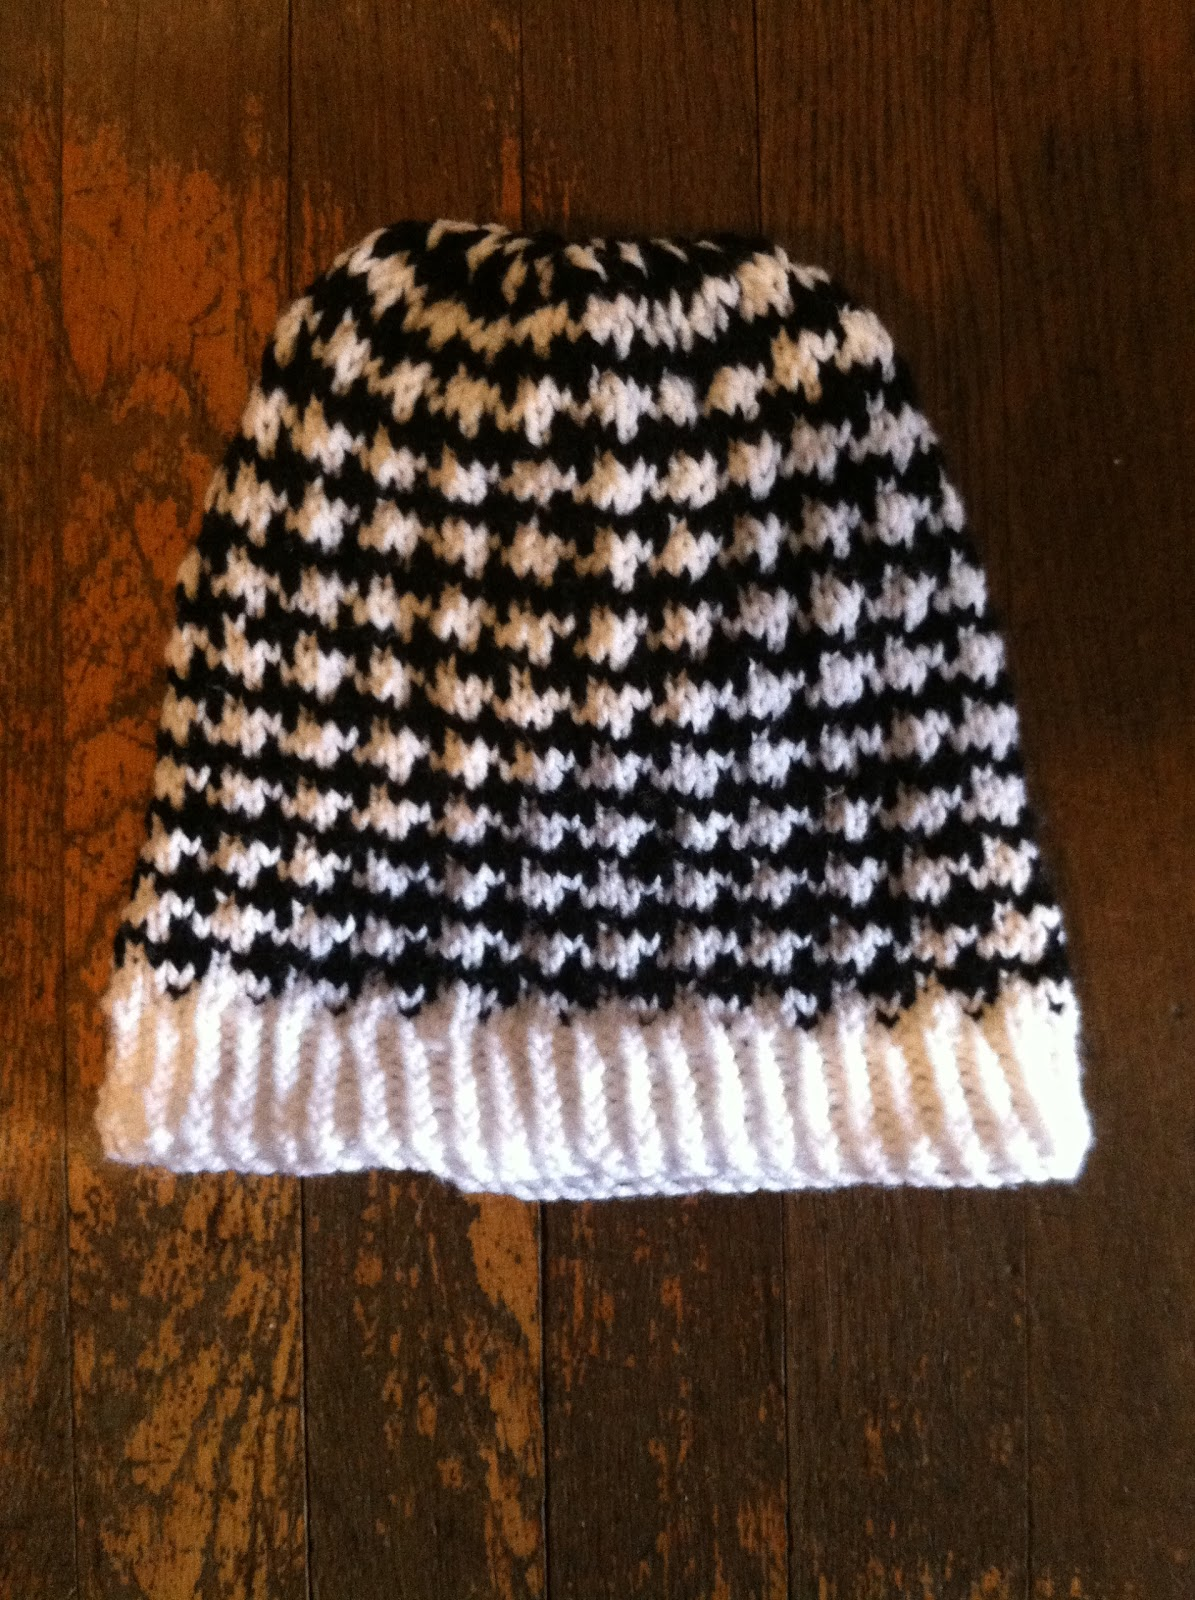 Houndstooth Knitting Pattern : Cats and Crafts: Knitted Houndstooth Hat